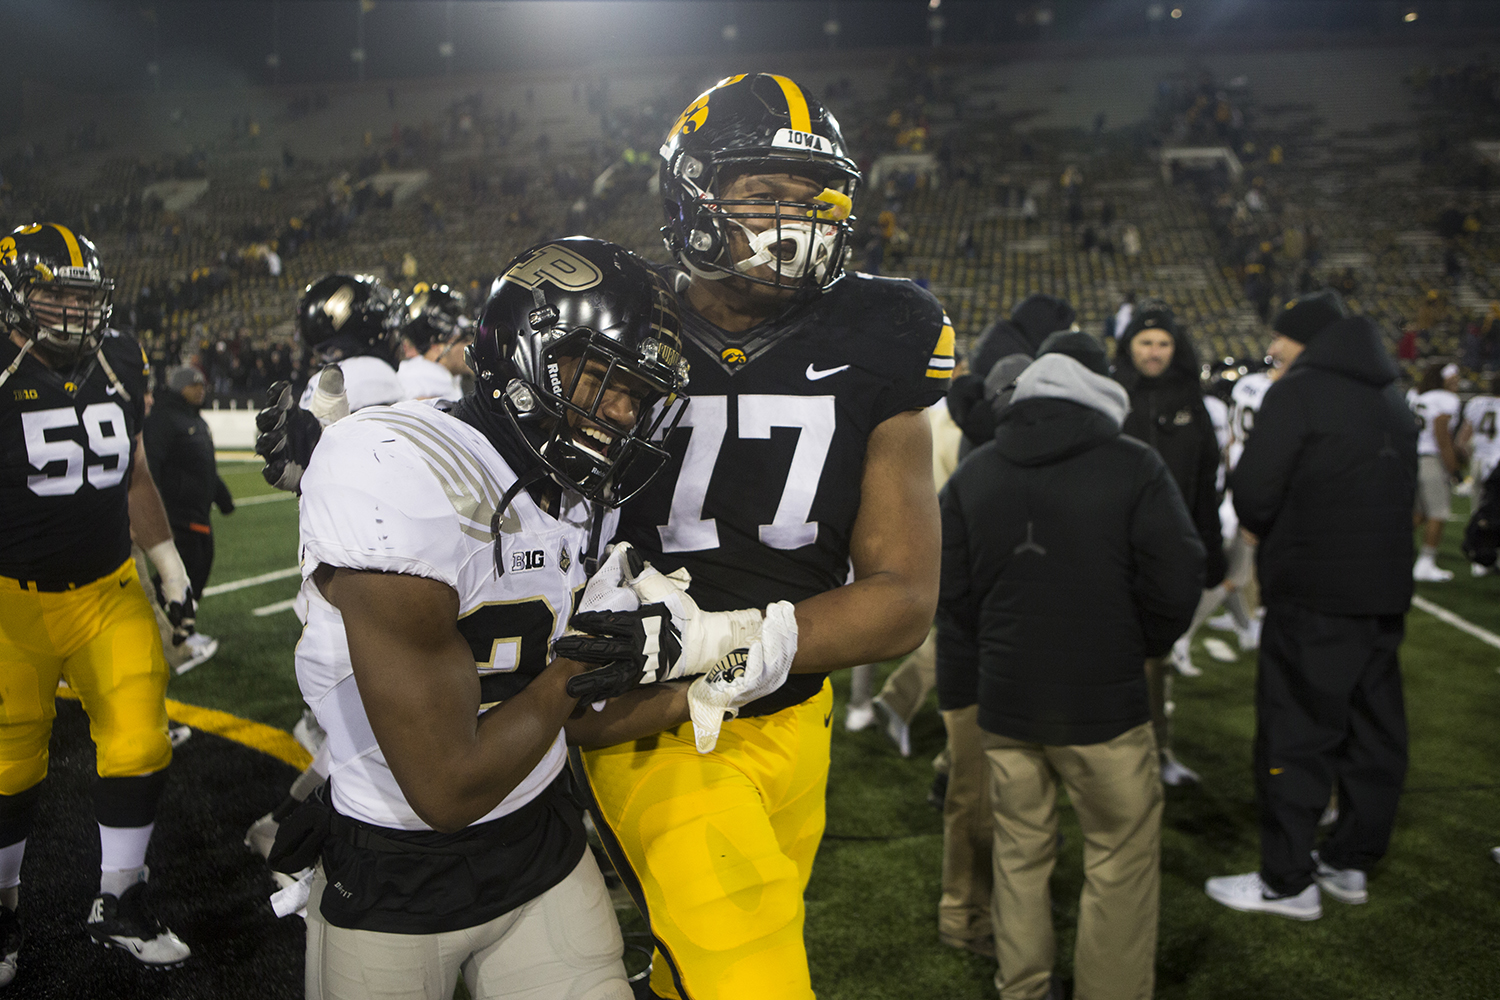 Iowa offensive linemen Alaric Jackson embraces Purdue safety Navon Mosley during the Iowa/Purdue football game in Kinnick Stadium on Saturday, Nov. 18, 2017. The Boilermakers defeated the Hawkeyes, 24-15. (Joseph Cress/The Daily Iowan)